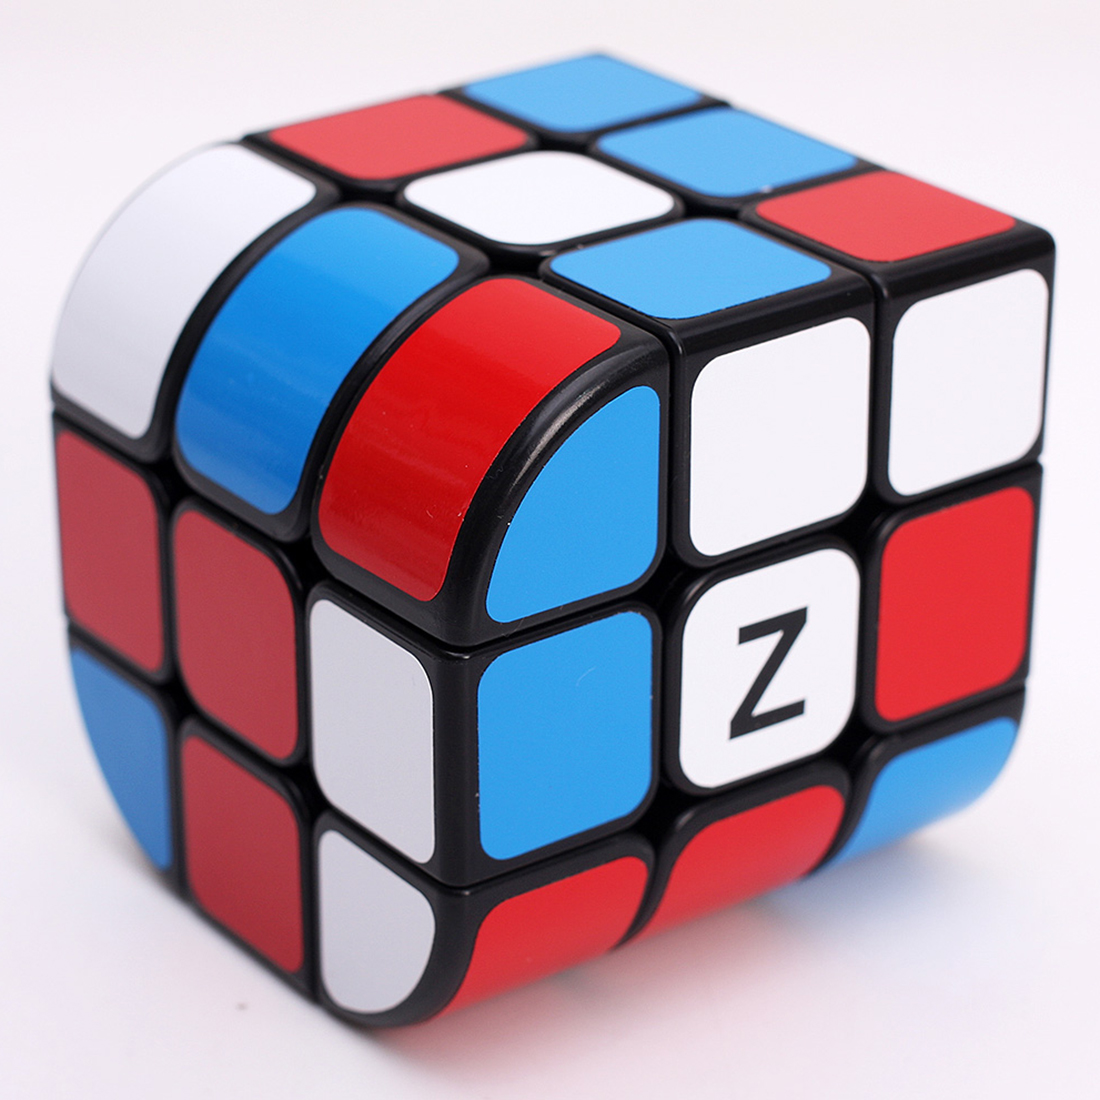 ZCUBE Penrose Cube Trihedron Magic Cube Puzzle Toys for Competition ChallengeZCUBE Penrose Cube Trihedron Magic Cube Puzzle Toys for Competition Challenge